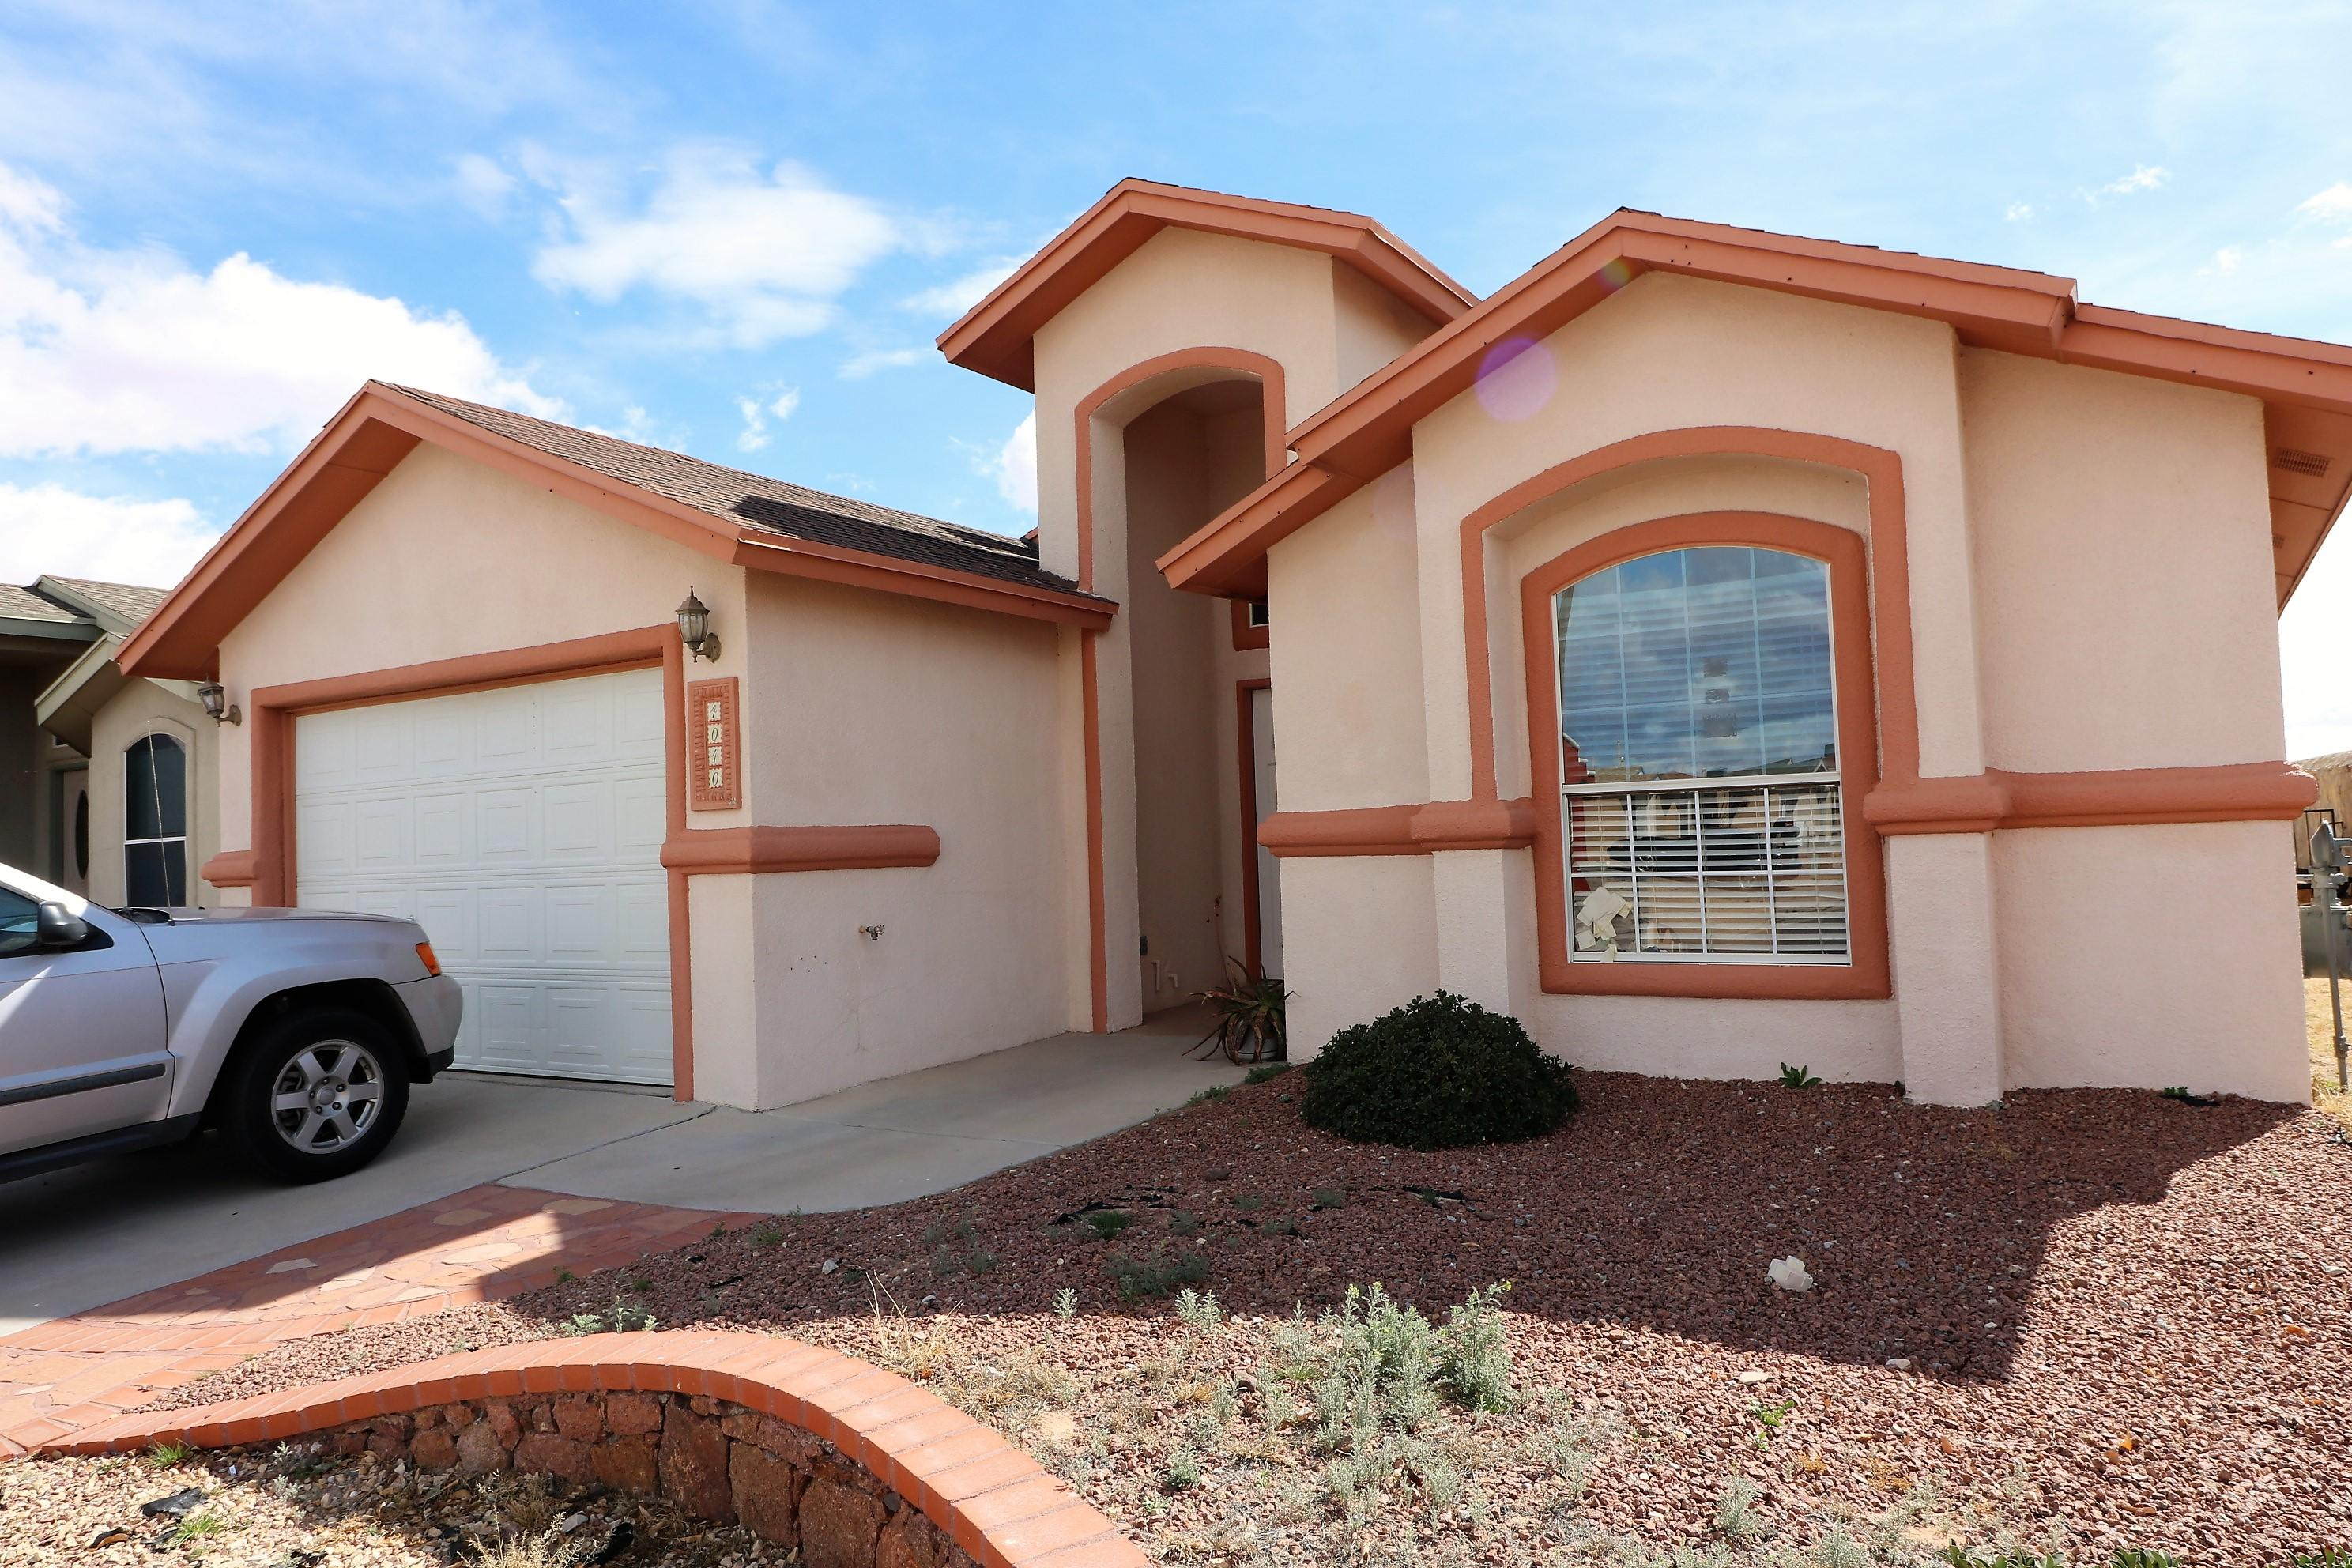 4040 TIERRA VENADO, El Paso, Texas 79938, 3 Bedrooms Bedrooms, ,2 BathroomsBathrooms,Residential,For sale,TIERRA VENADO,804180